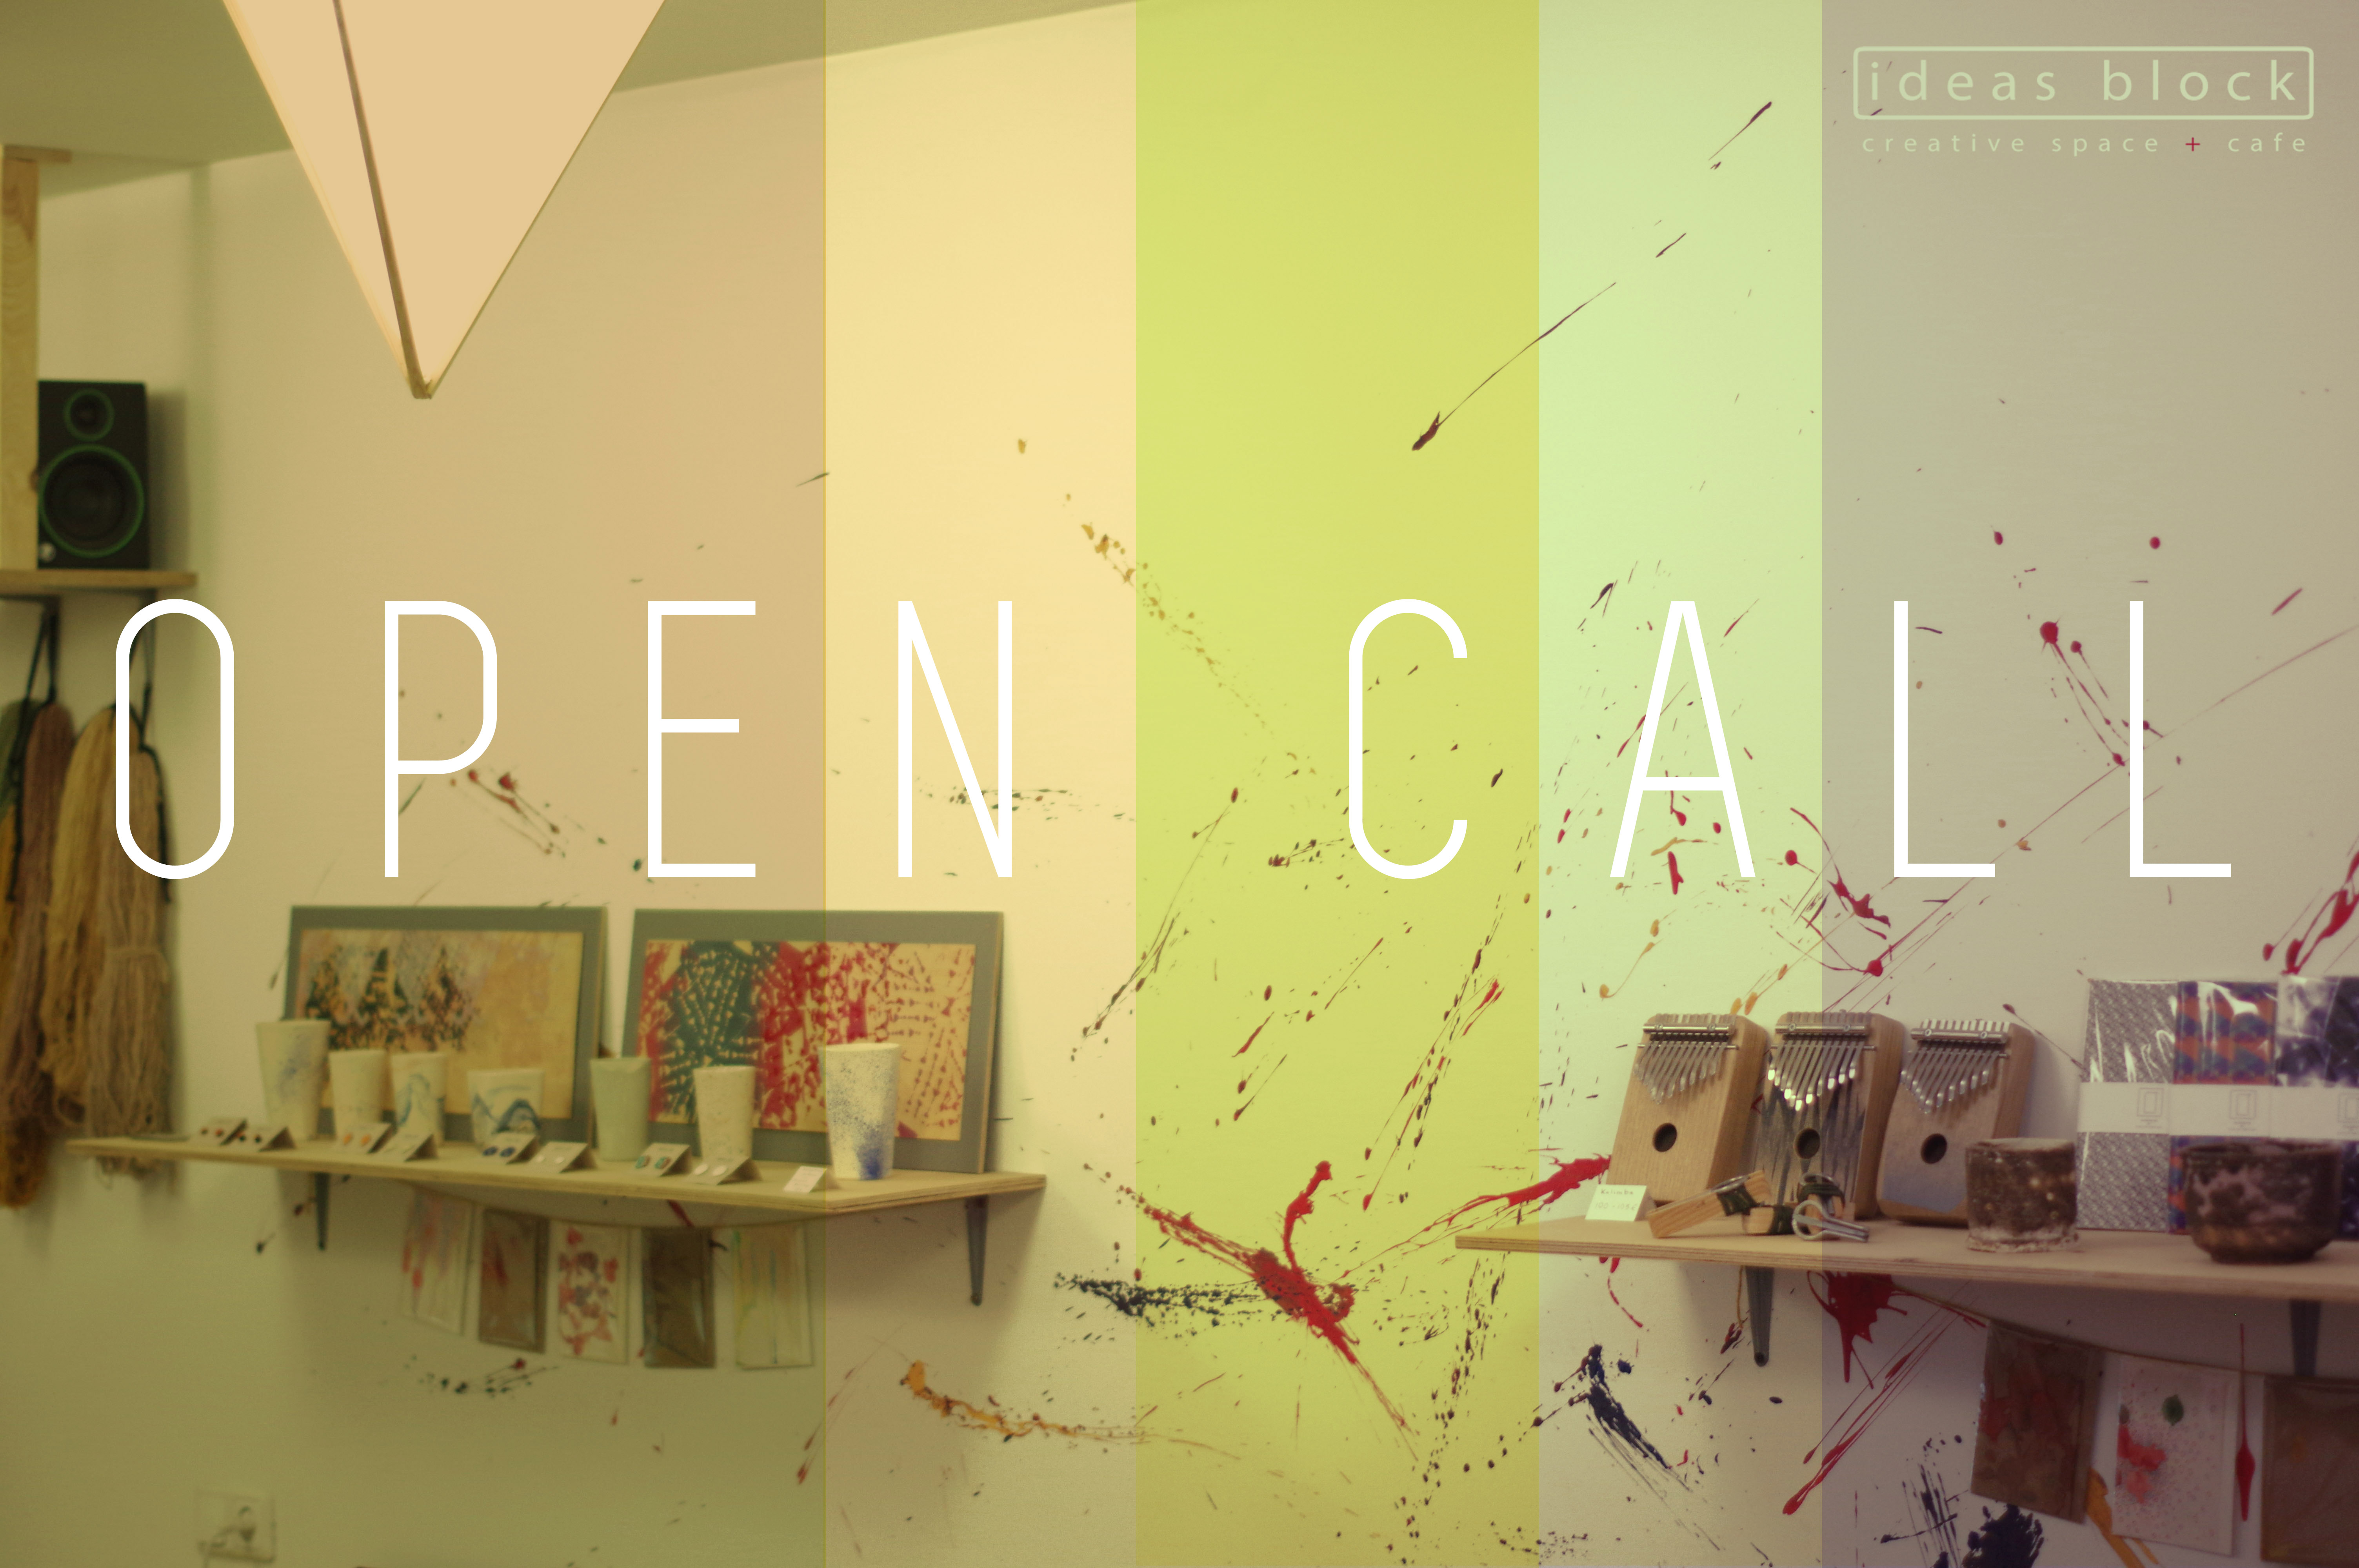 open call for artists, designers, residencies, creative thinkers